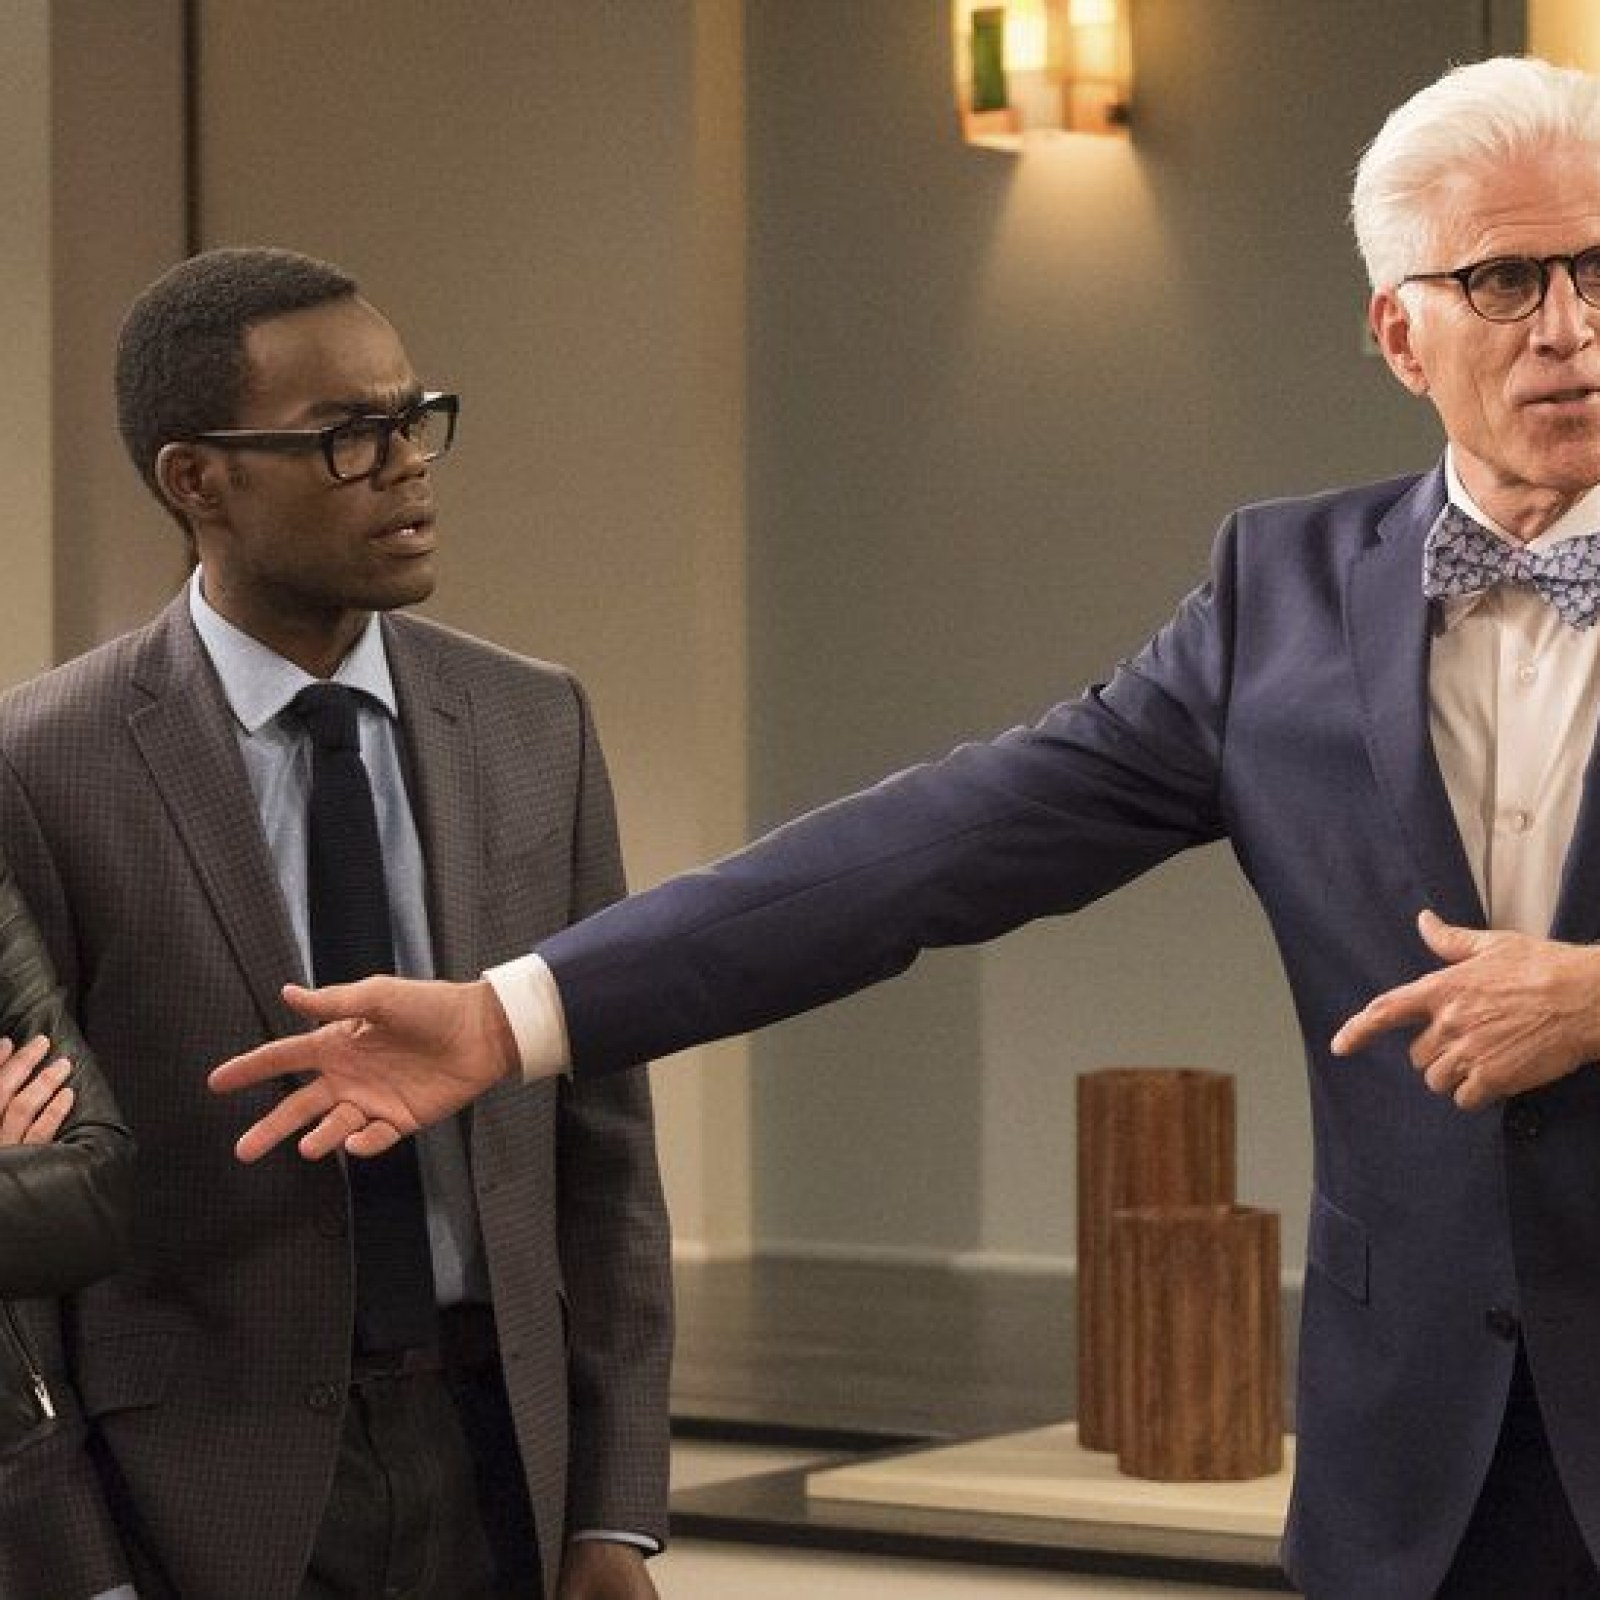 How Mike Schur's 'The Good Place' Is Revolutionizing the Sitcom